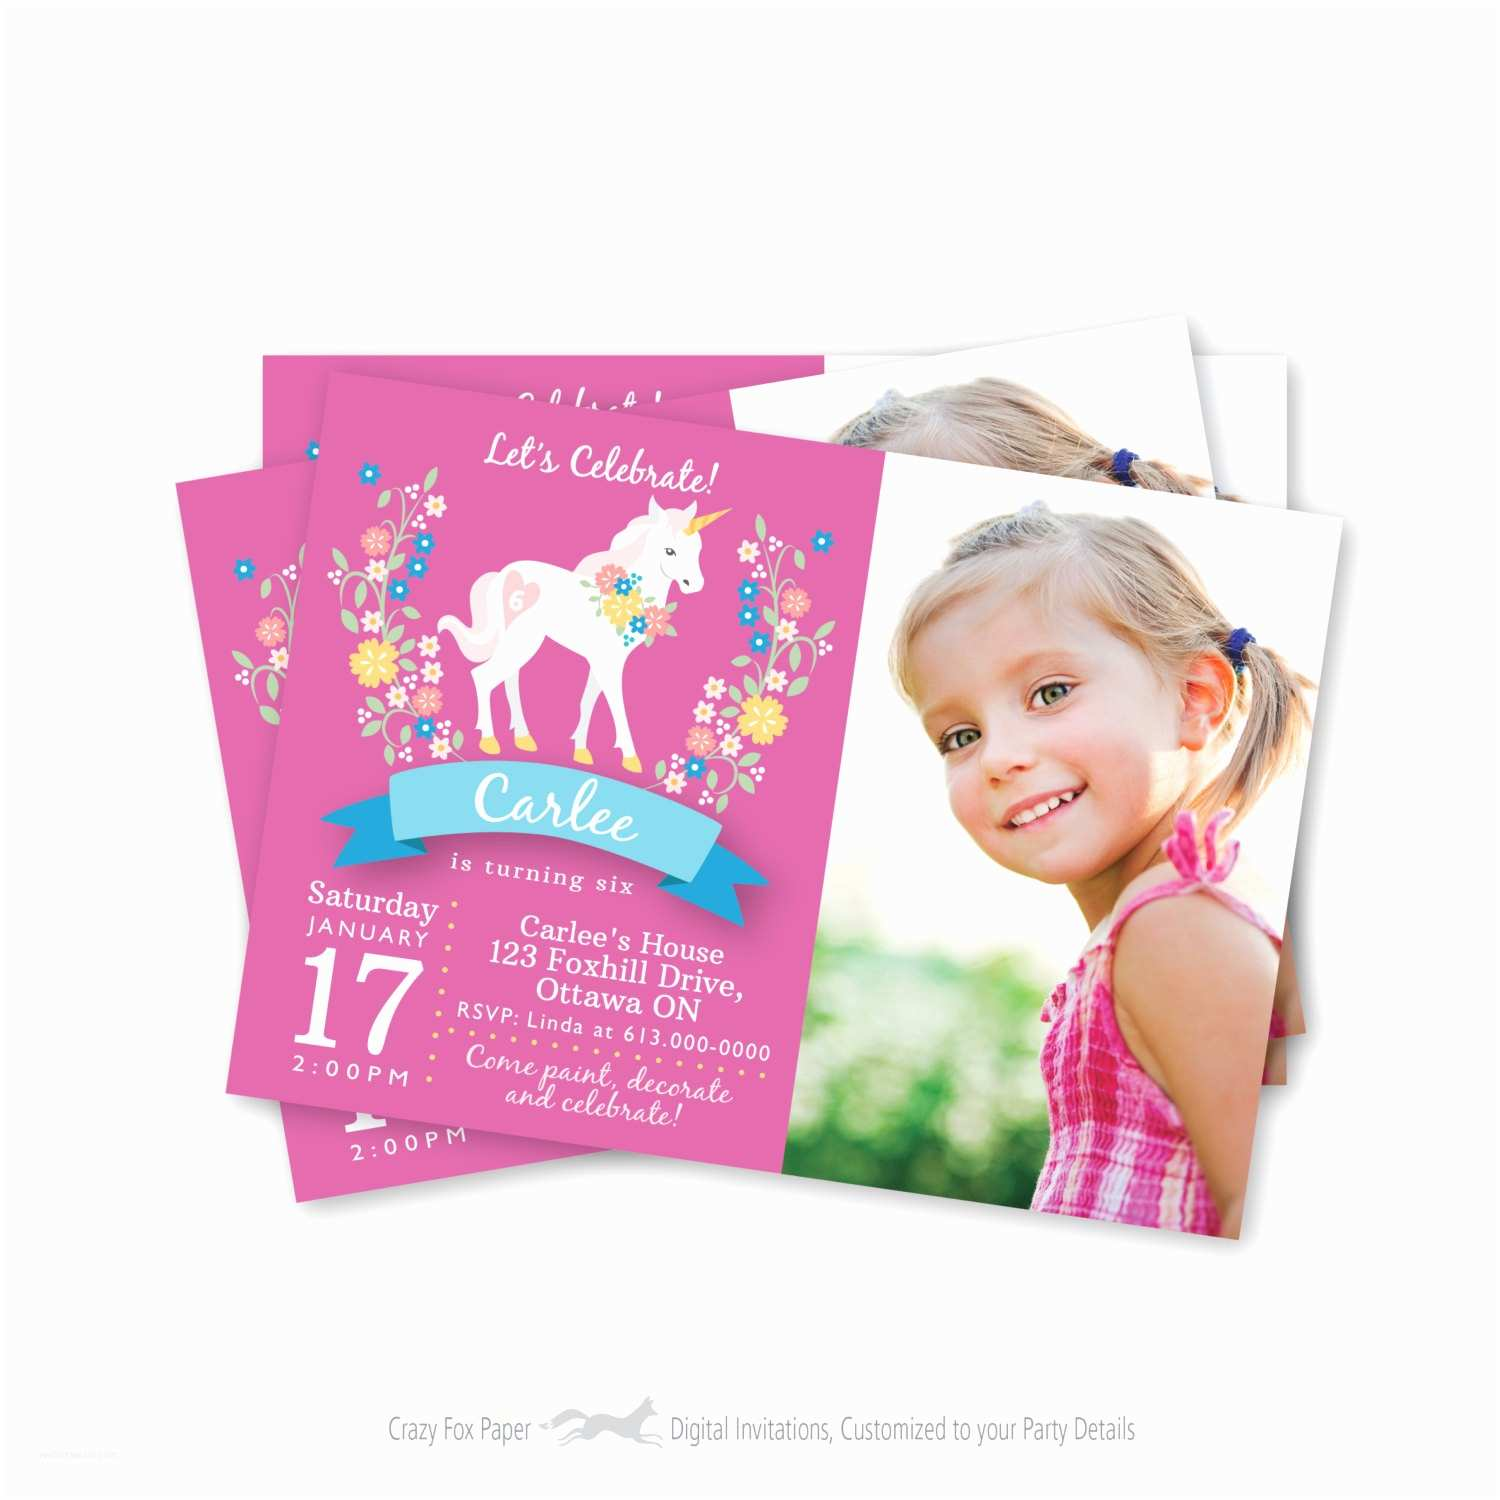 Custom Birthday Invitations Personalized Invitations Matik for